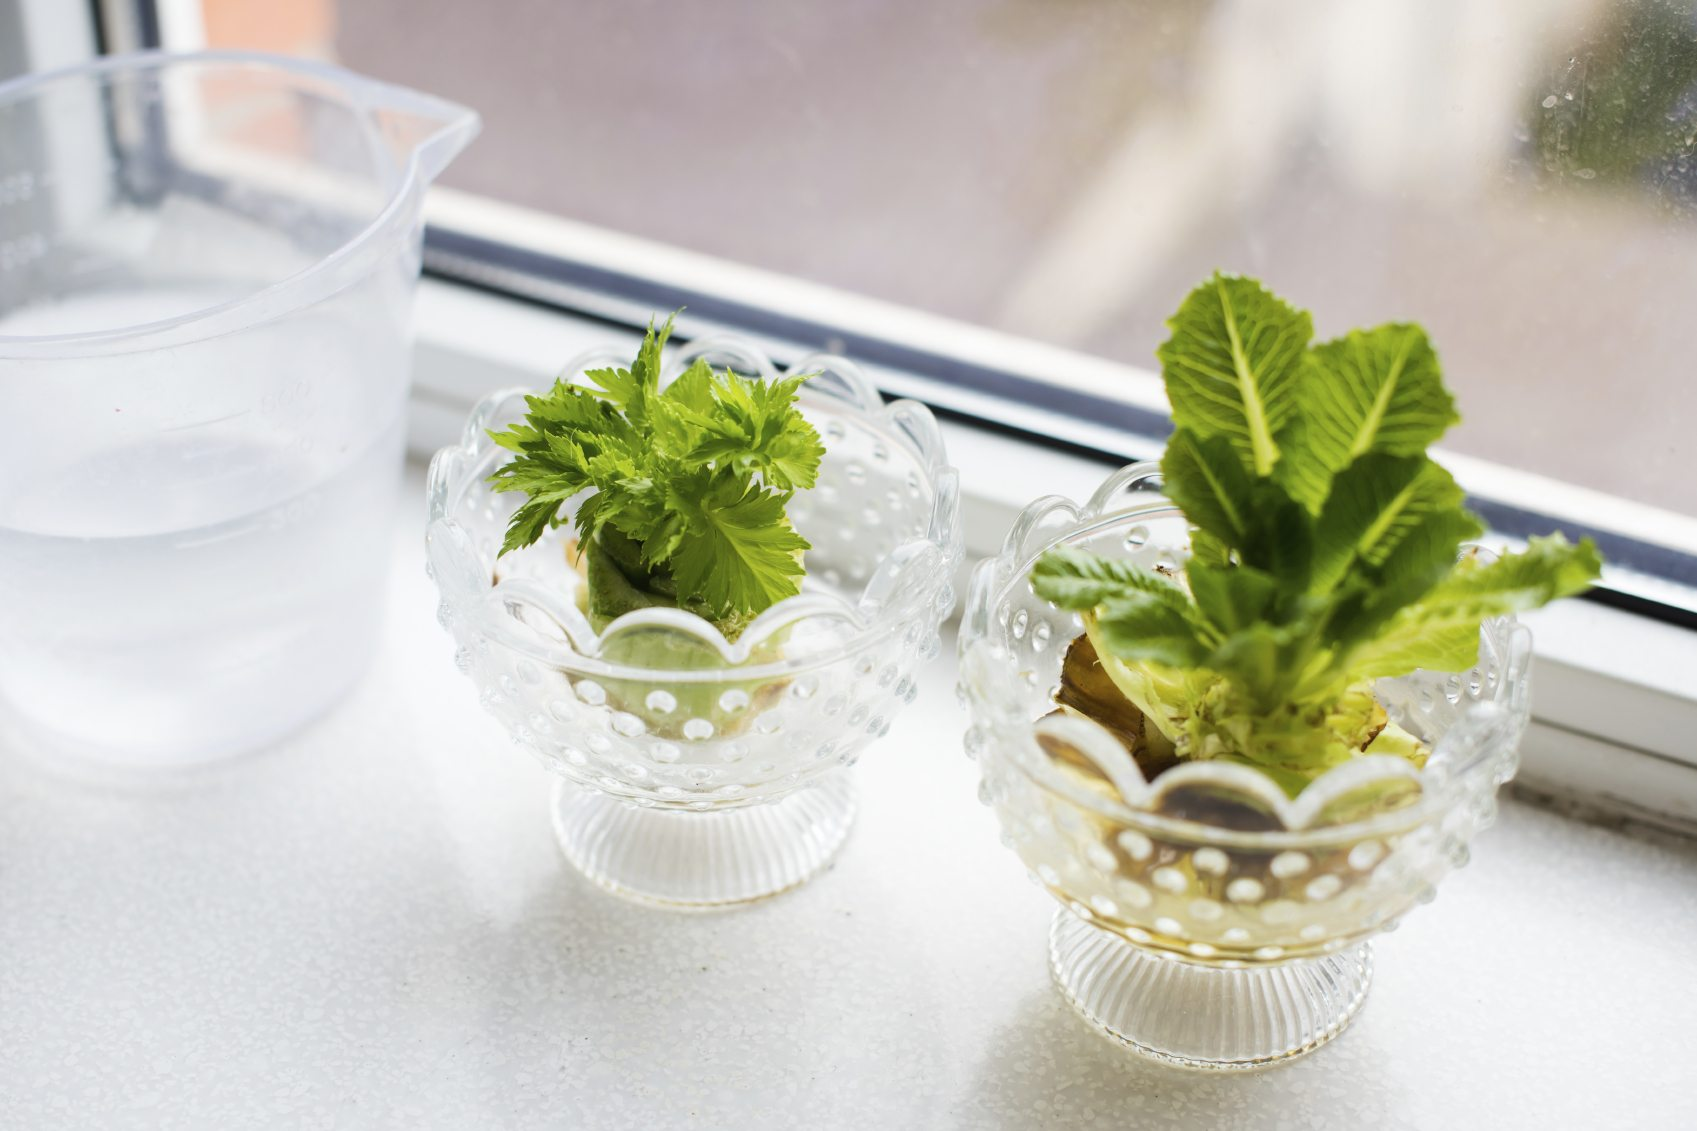 Windowsill Plants From Kitchen Scraps - How To Regrow ... Growing Vegetables From Scraps